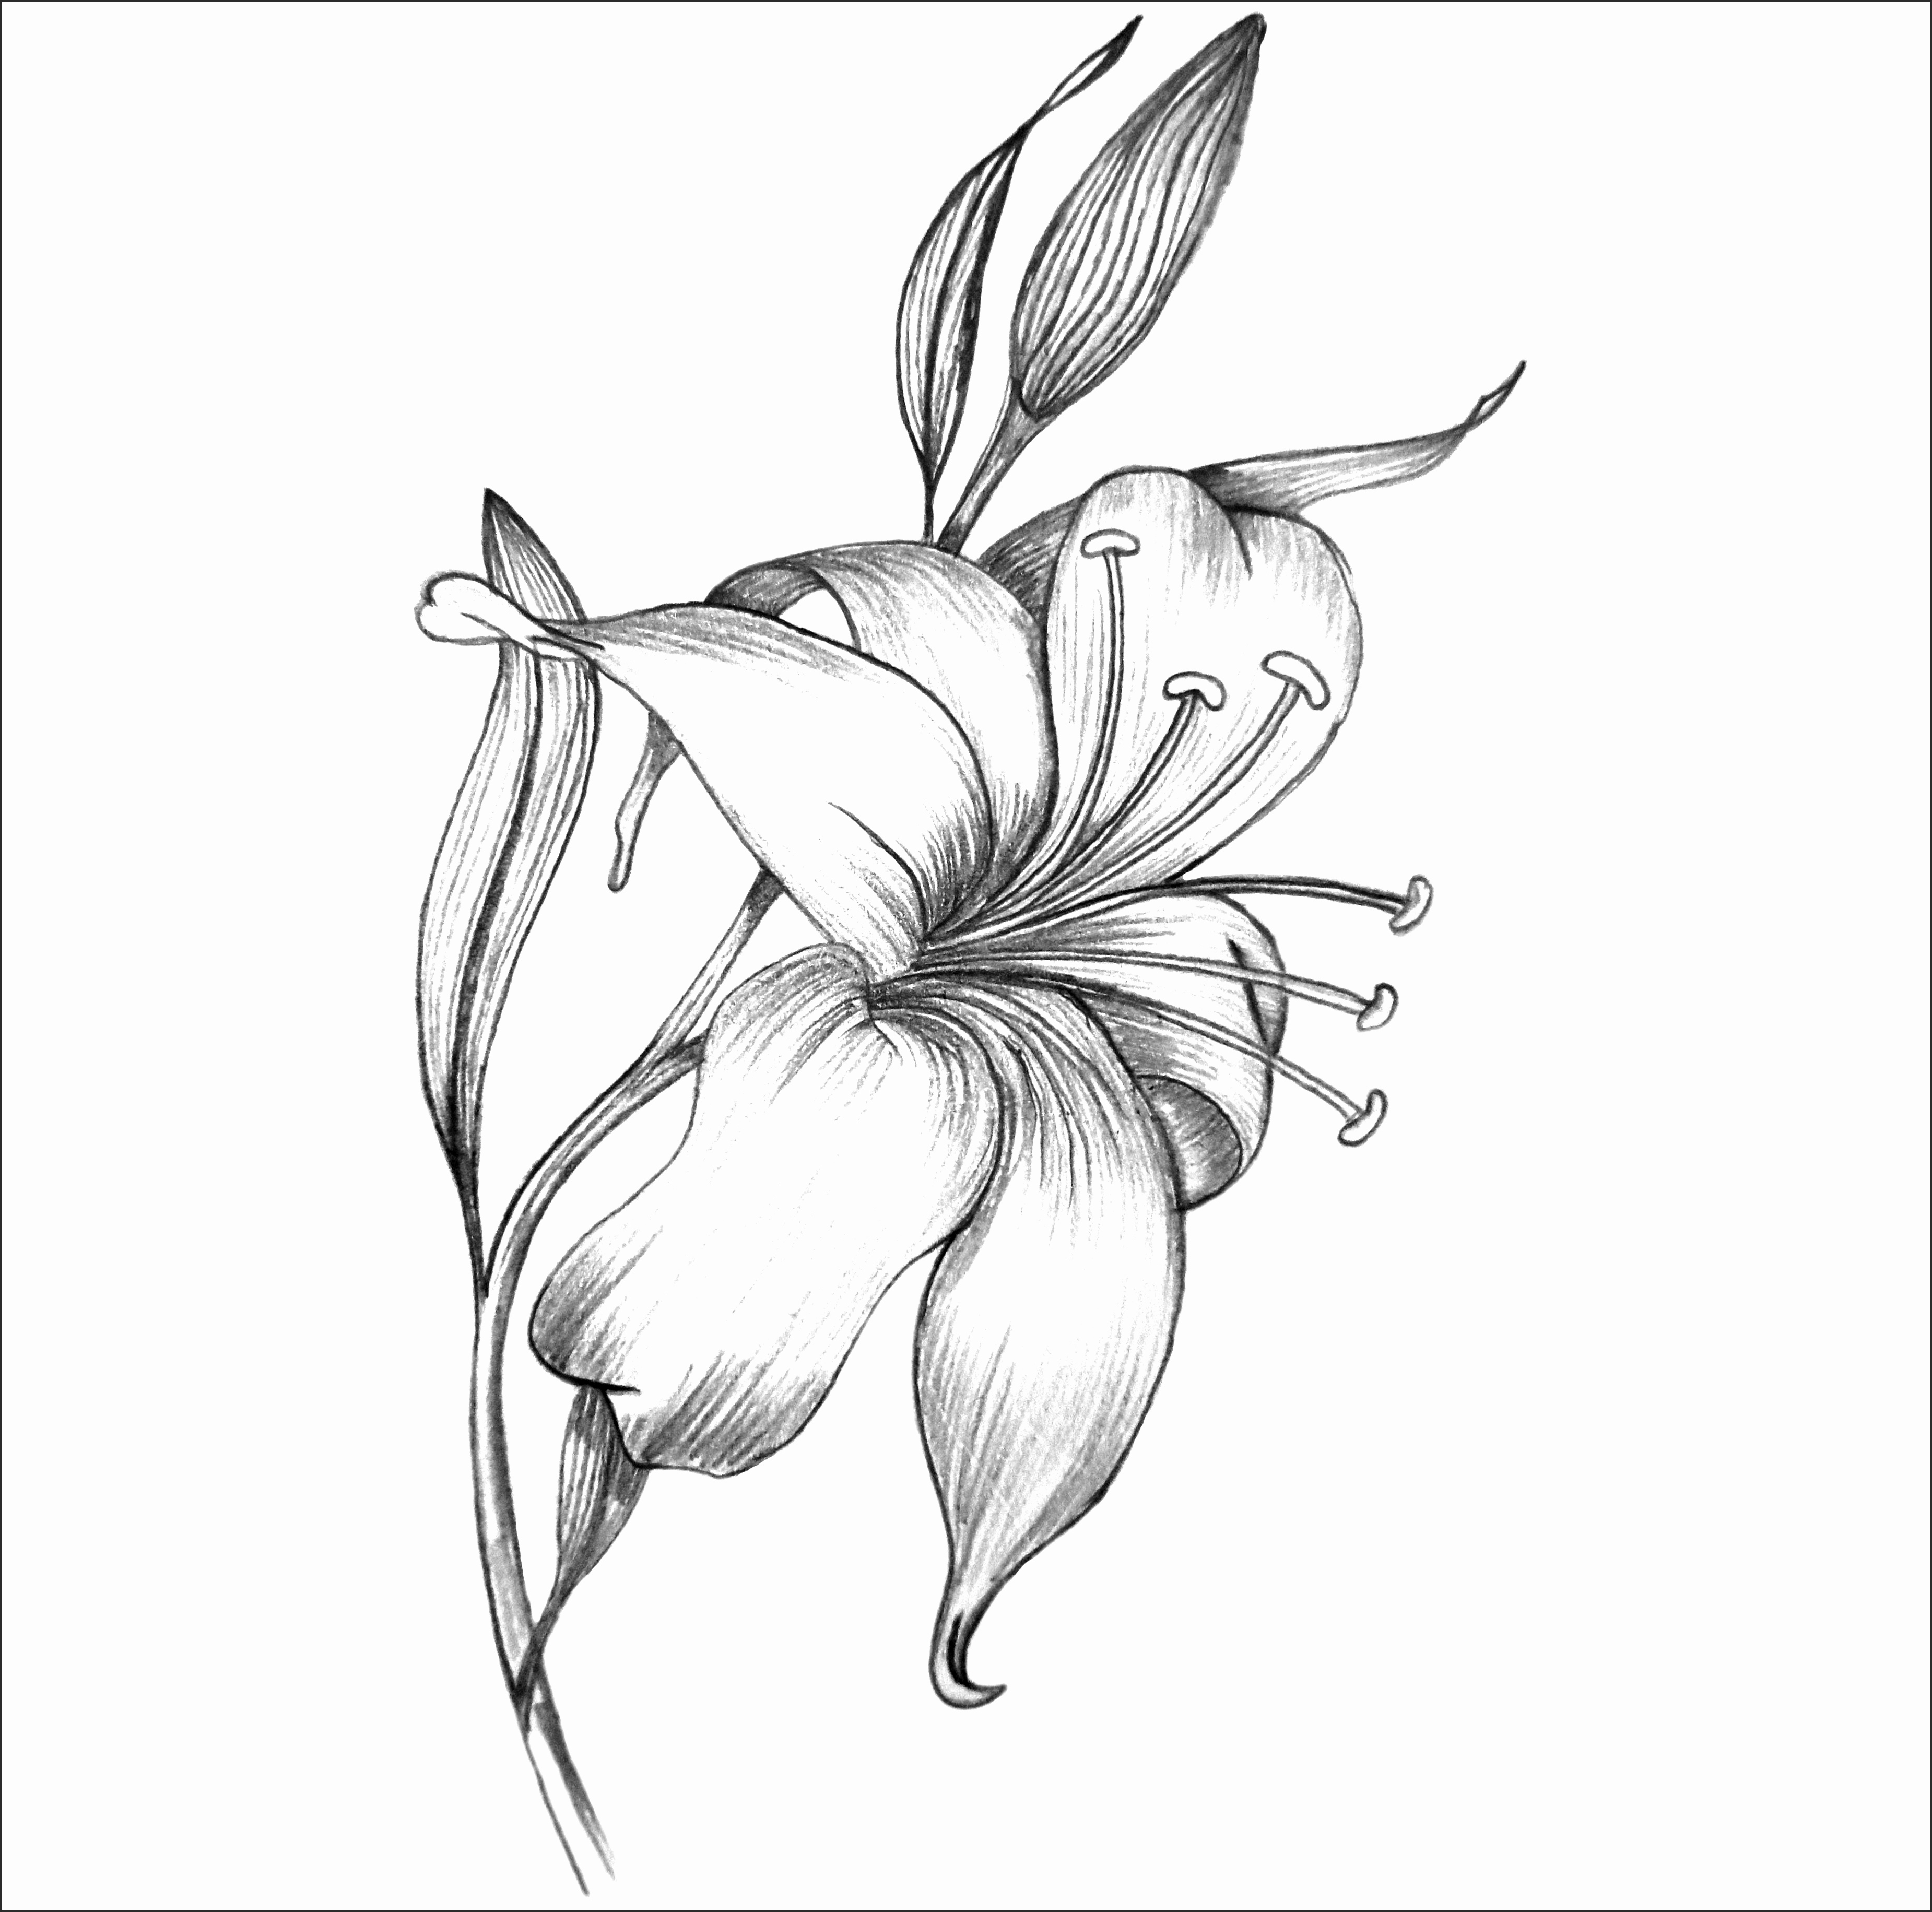 Line Drawing Of Lily Flower : Tiger lily flower drawing at getdrawings free for